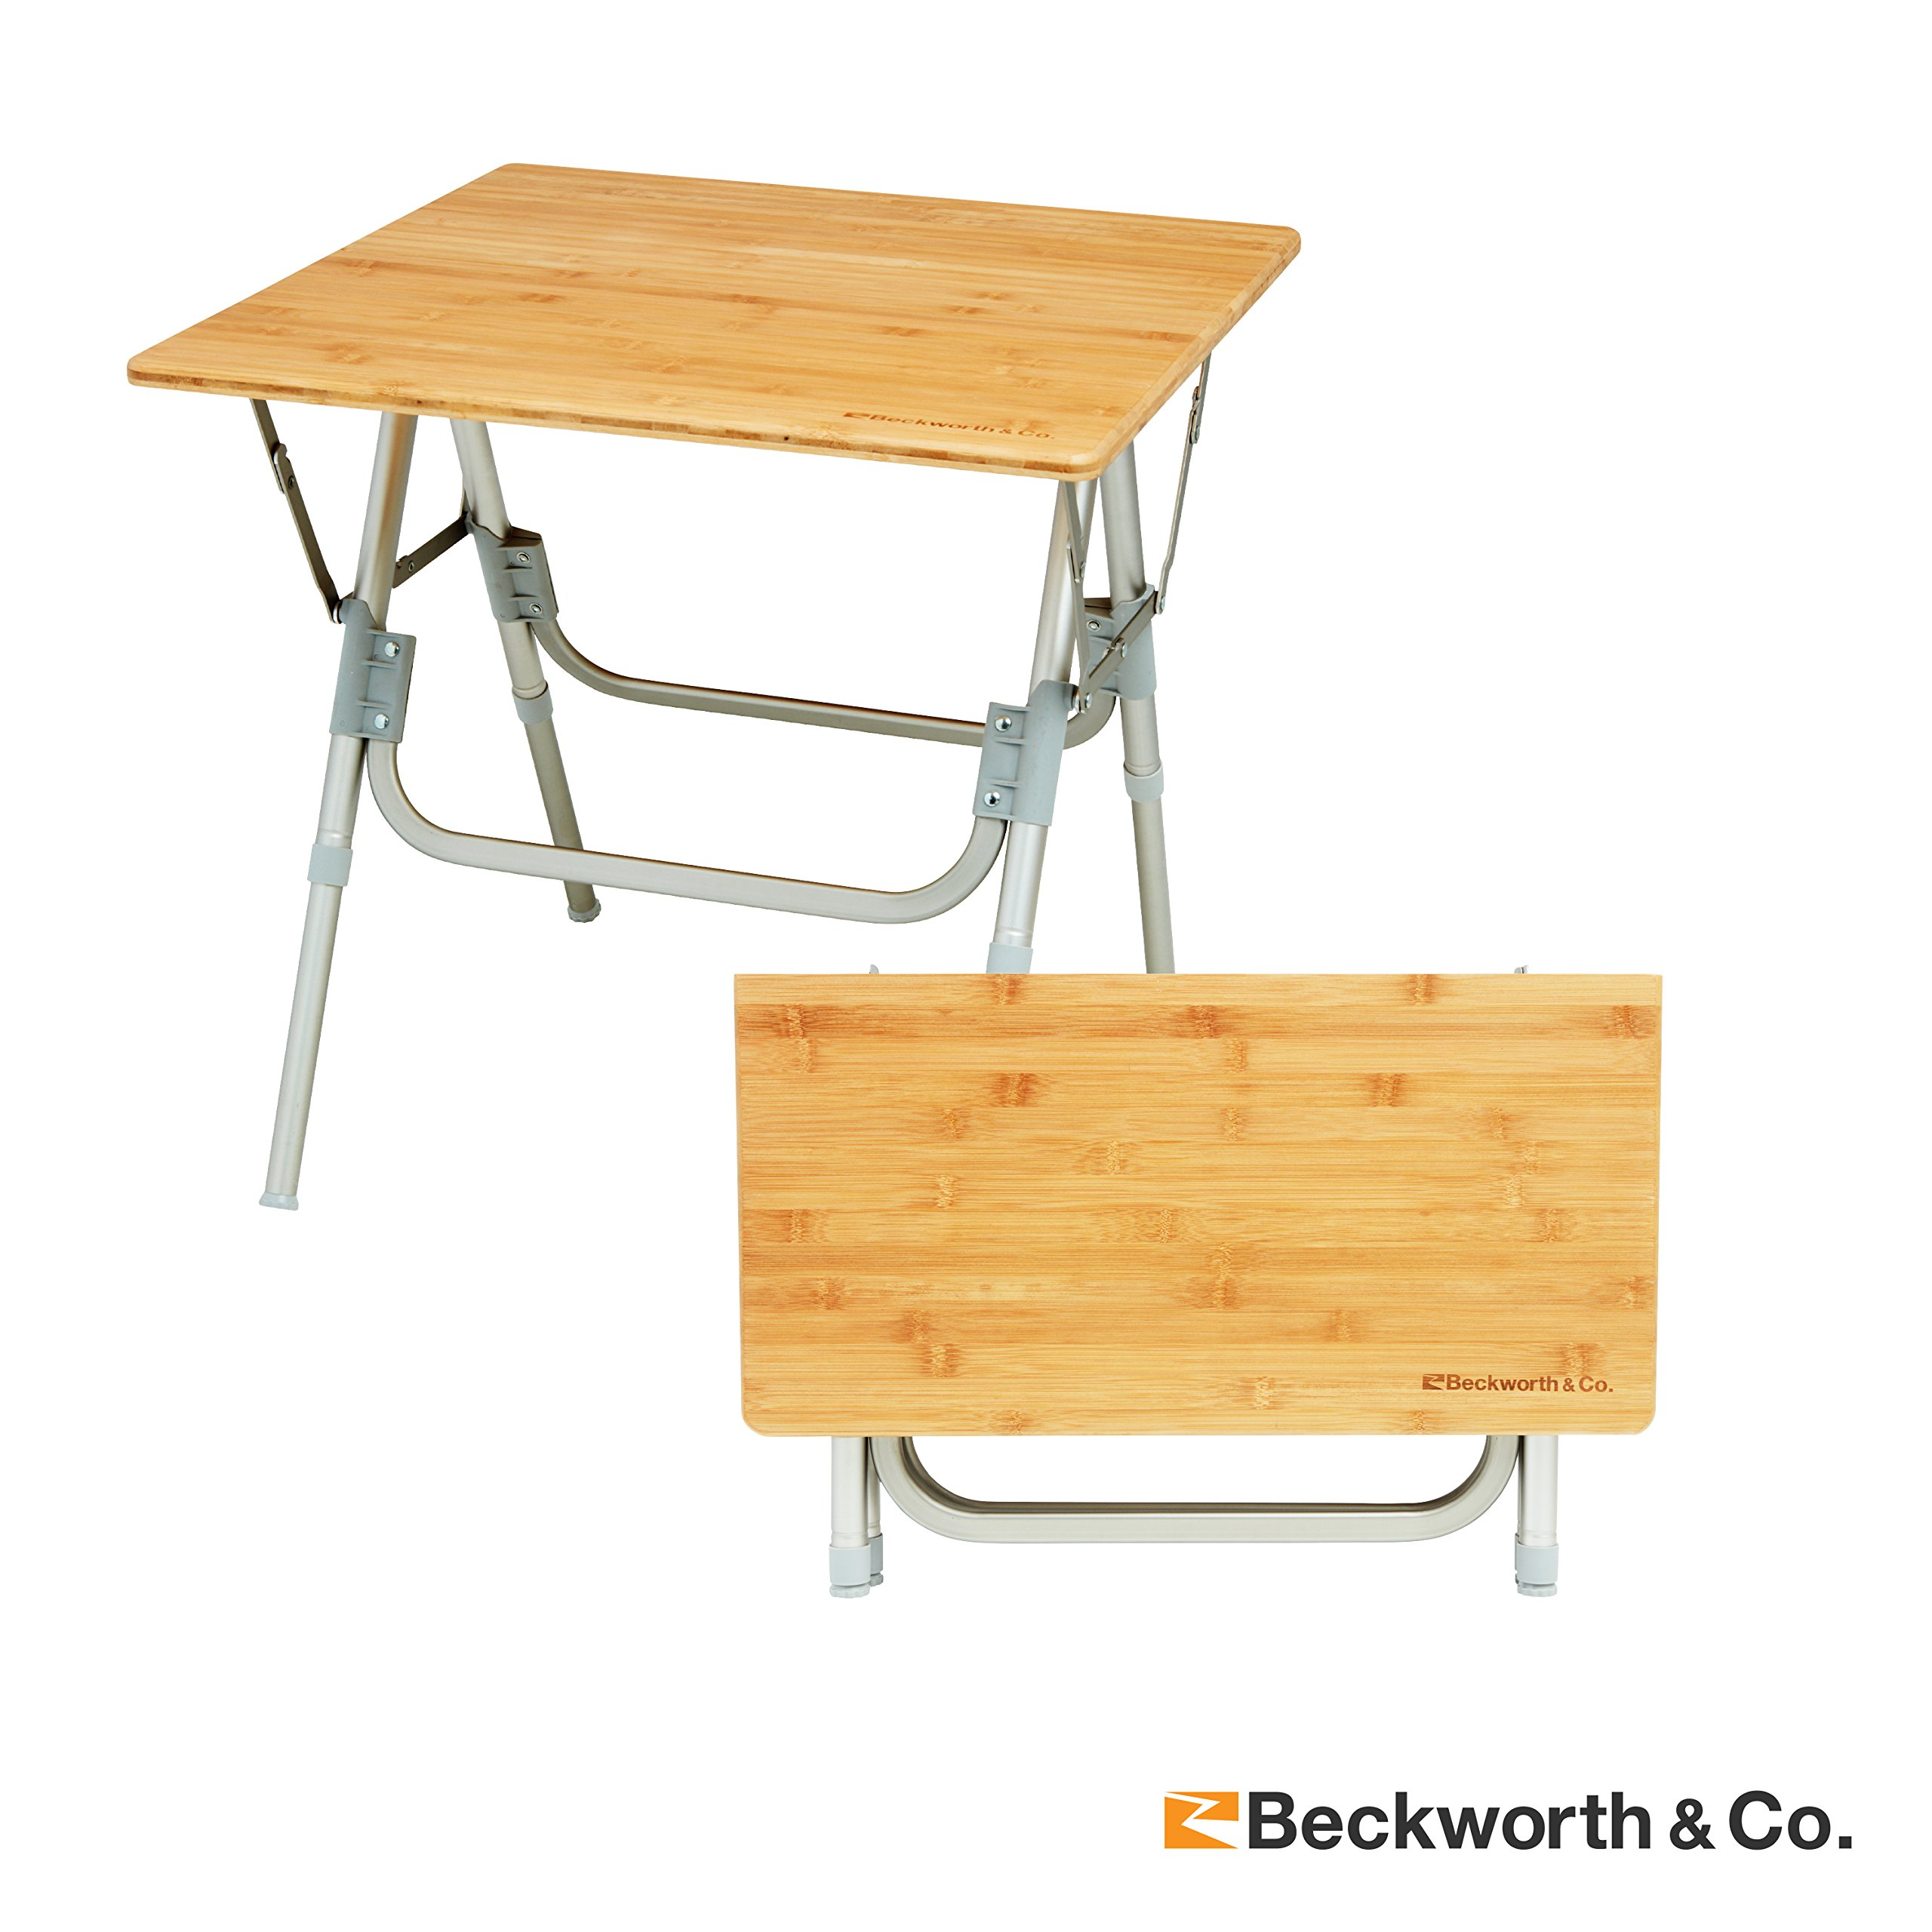 Beckworth & Co.. HalfFlip Bamboo Portable Outdoor Picnic Folding Table with Adjustable Height - Square by Beckworth & Co.